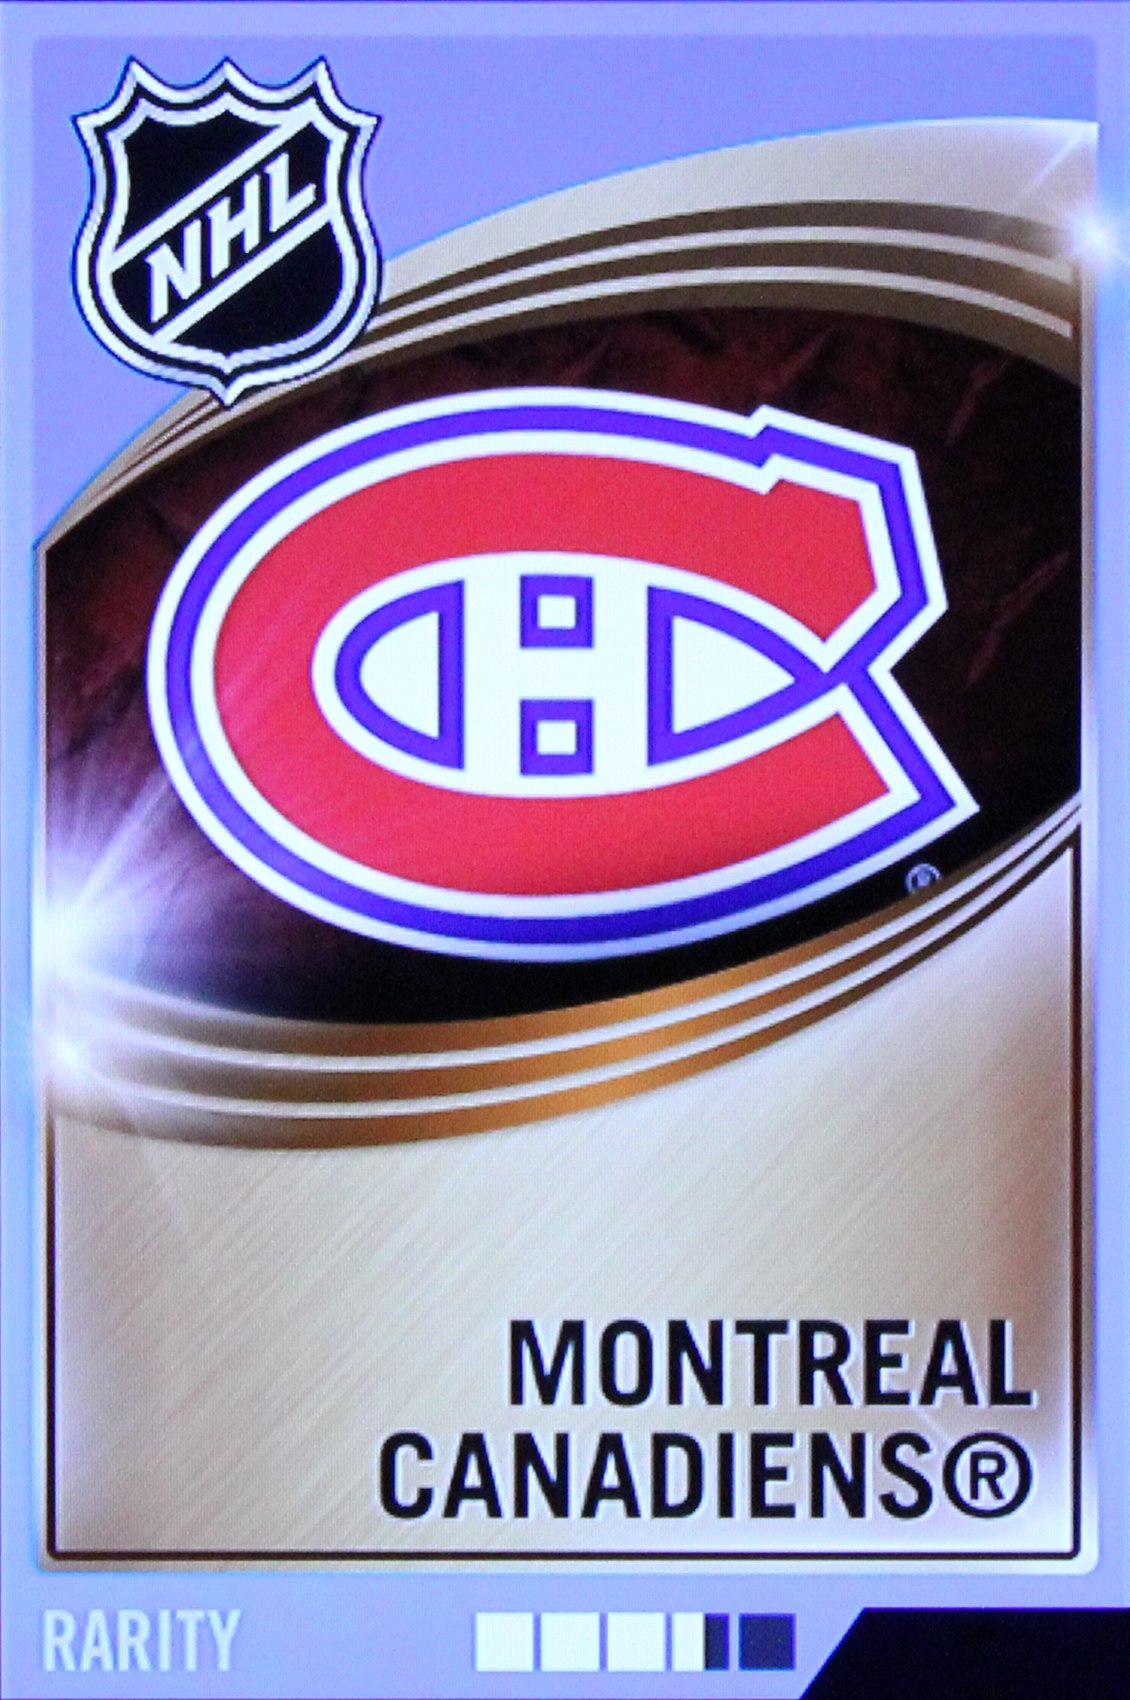 Nhl 15 montreal canadiens checklist nhl guides - Canadiens hockey logo ...